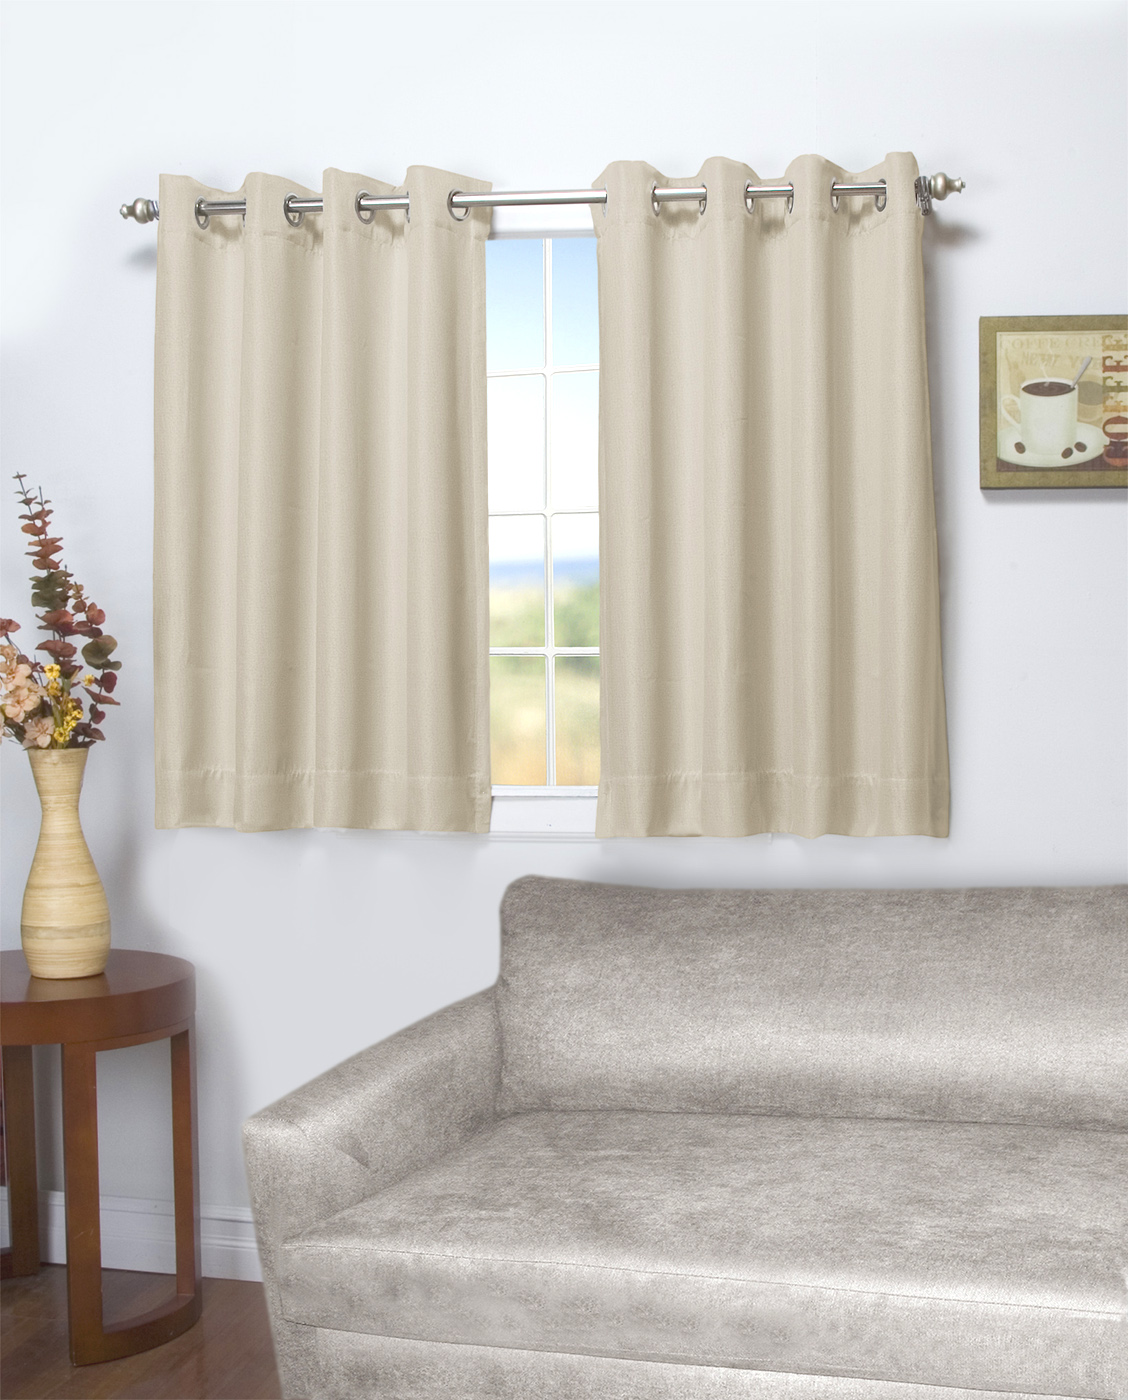 24 Inch Kitchen Curtains Tacoma Double Blackout And Insulated Grommet Panel